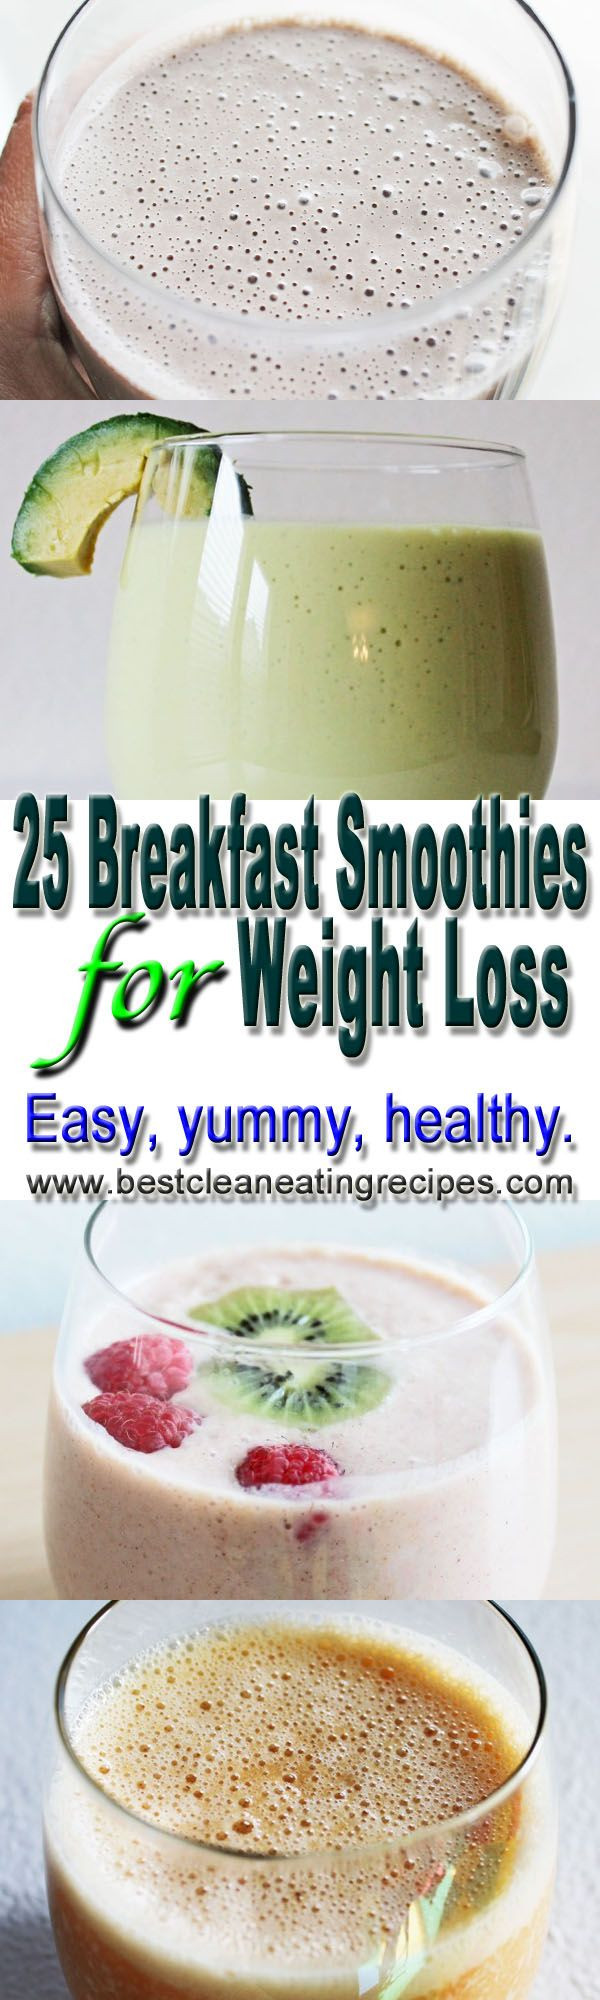 Breakfast Drinks For Weight Loss  Creative Mornings 25 Breakfast Smoothie Recipes for